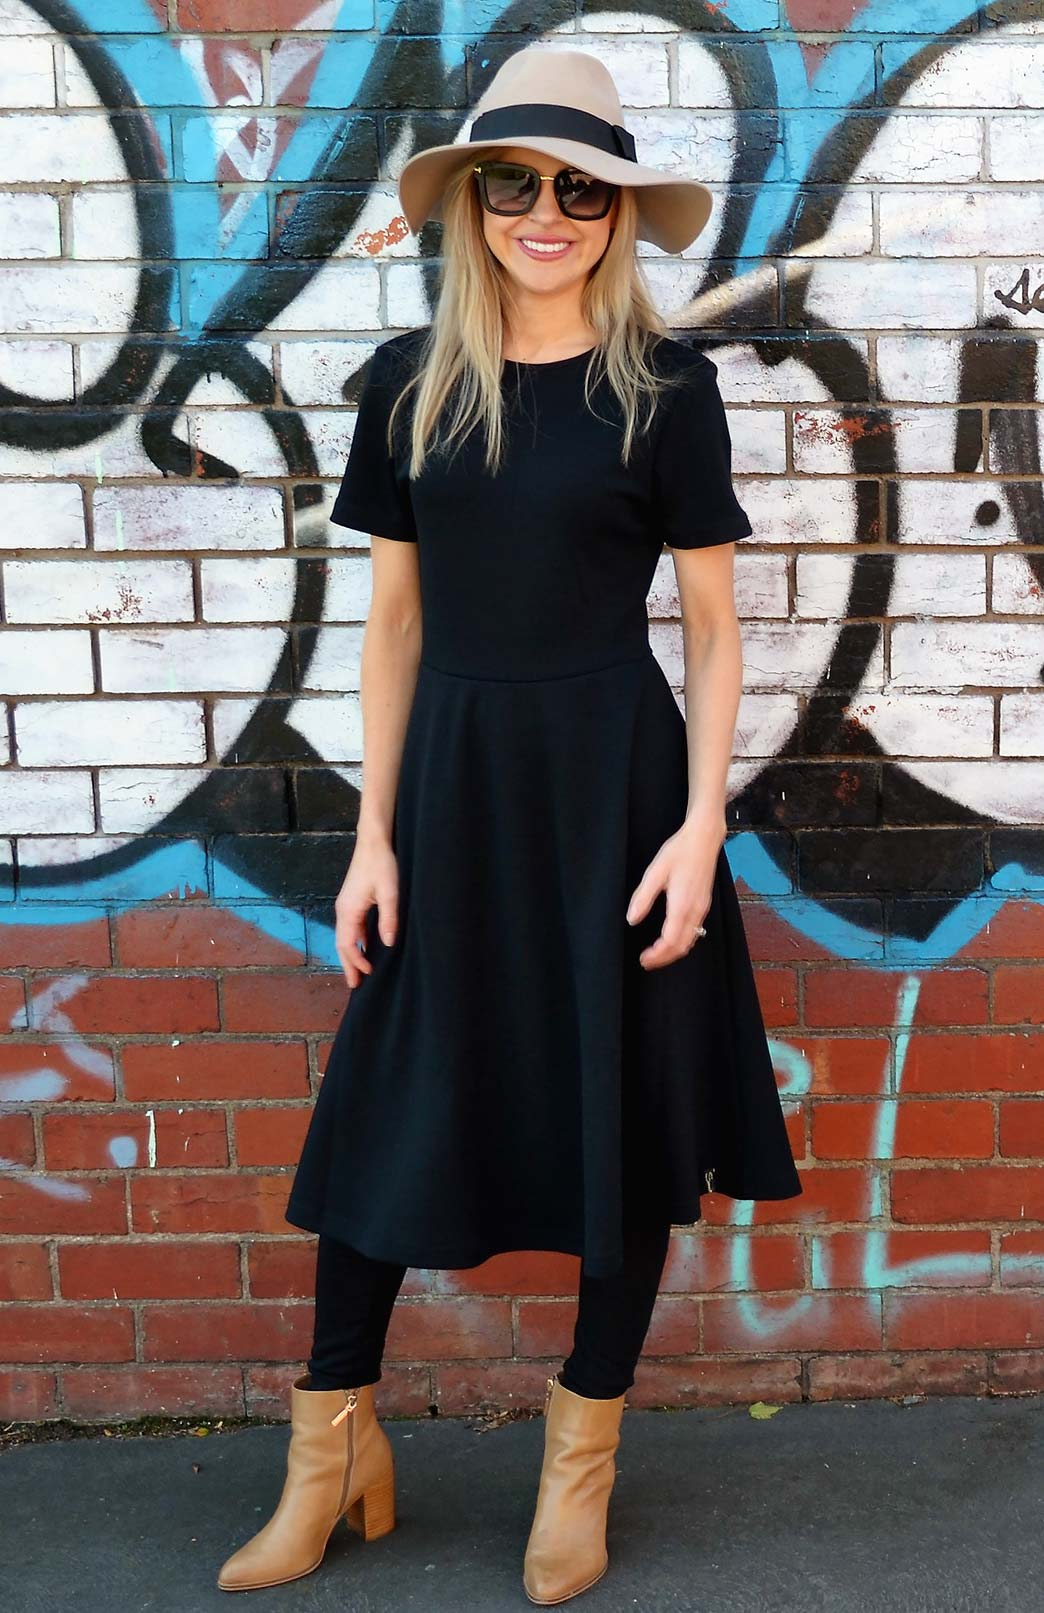 Zoe Dress - Women's Black Heavyweight Wool Short Sleeved Dress - Smitten Merino Tasmania Australia